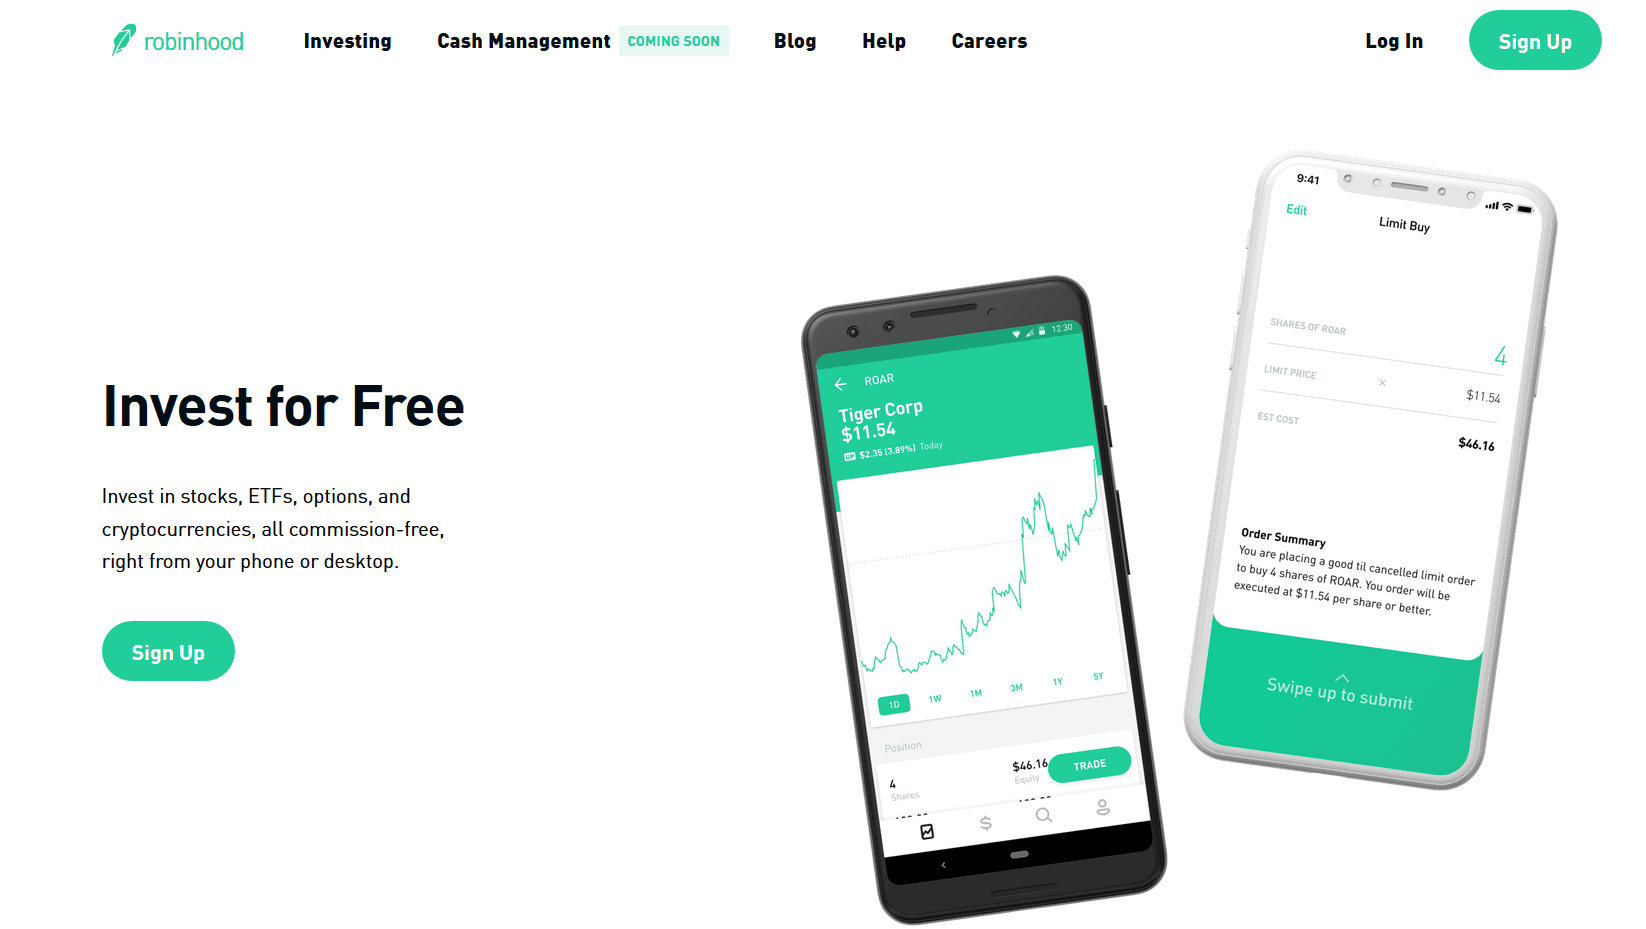 Prices Of Robinhood Commission-Free Investing